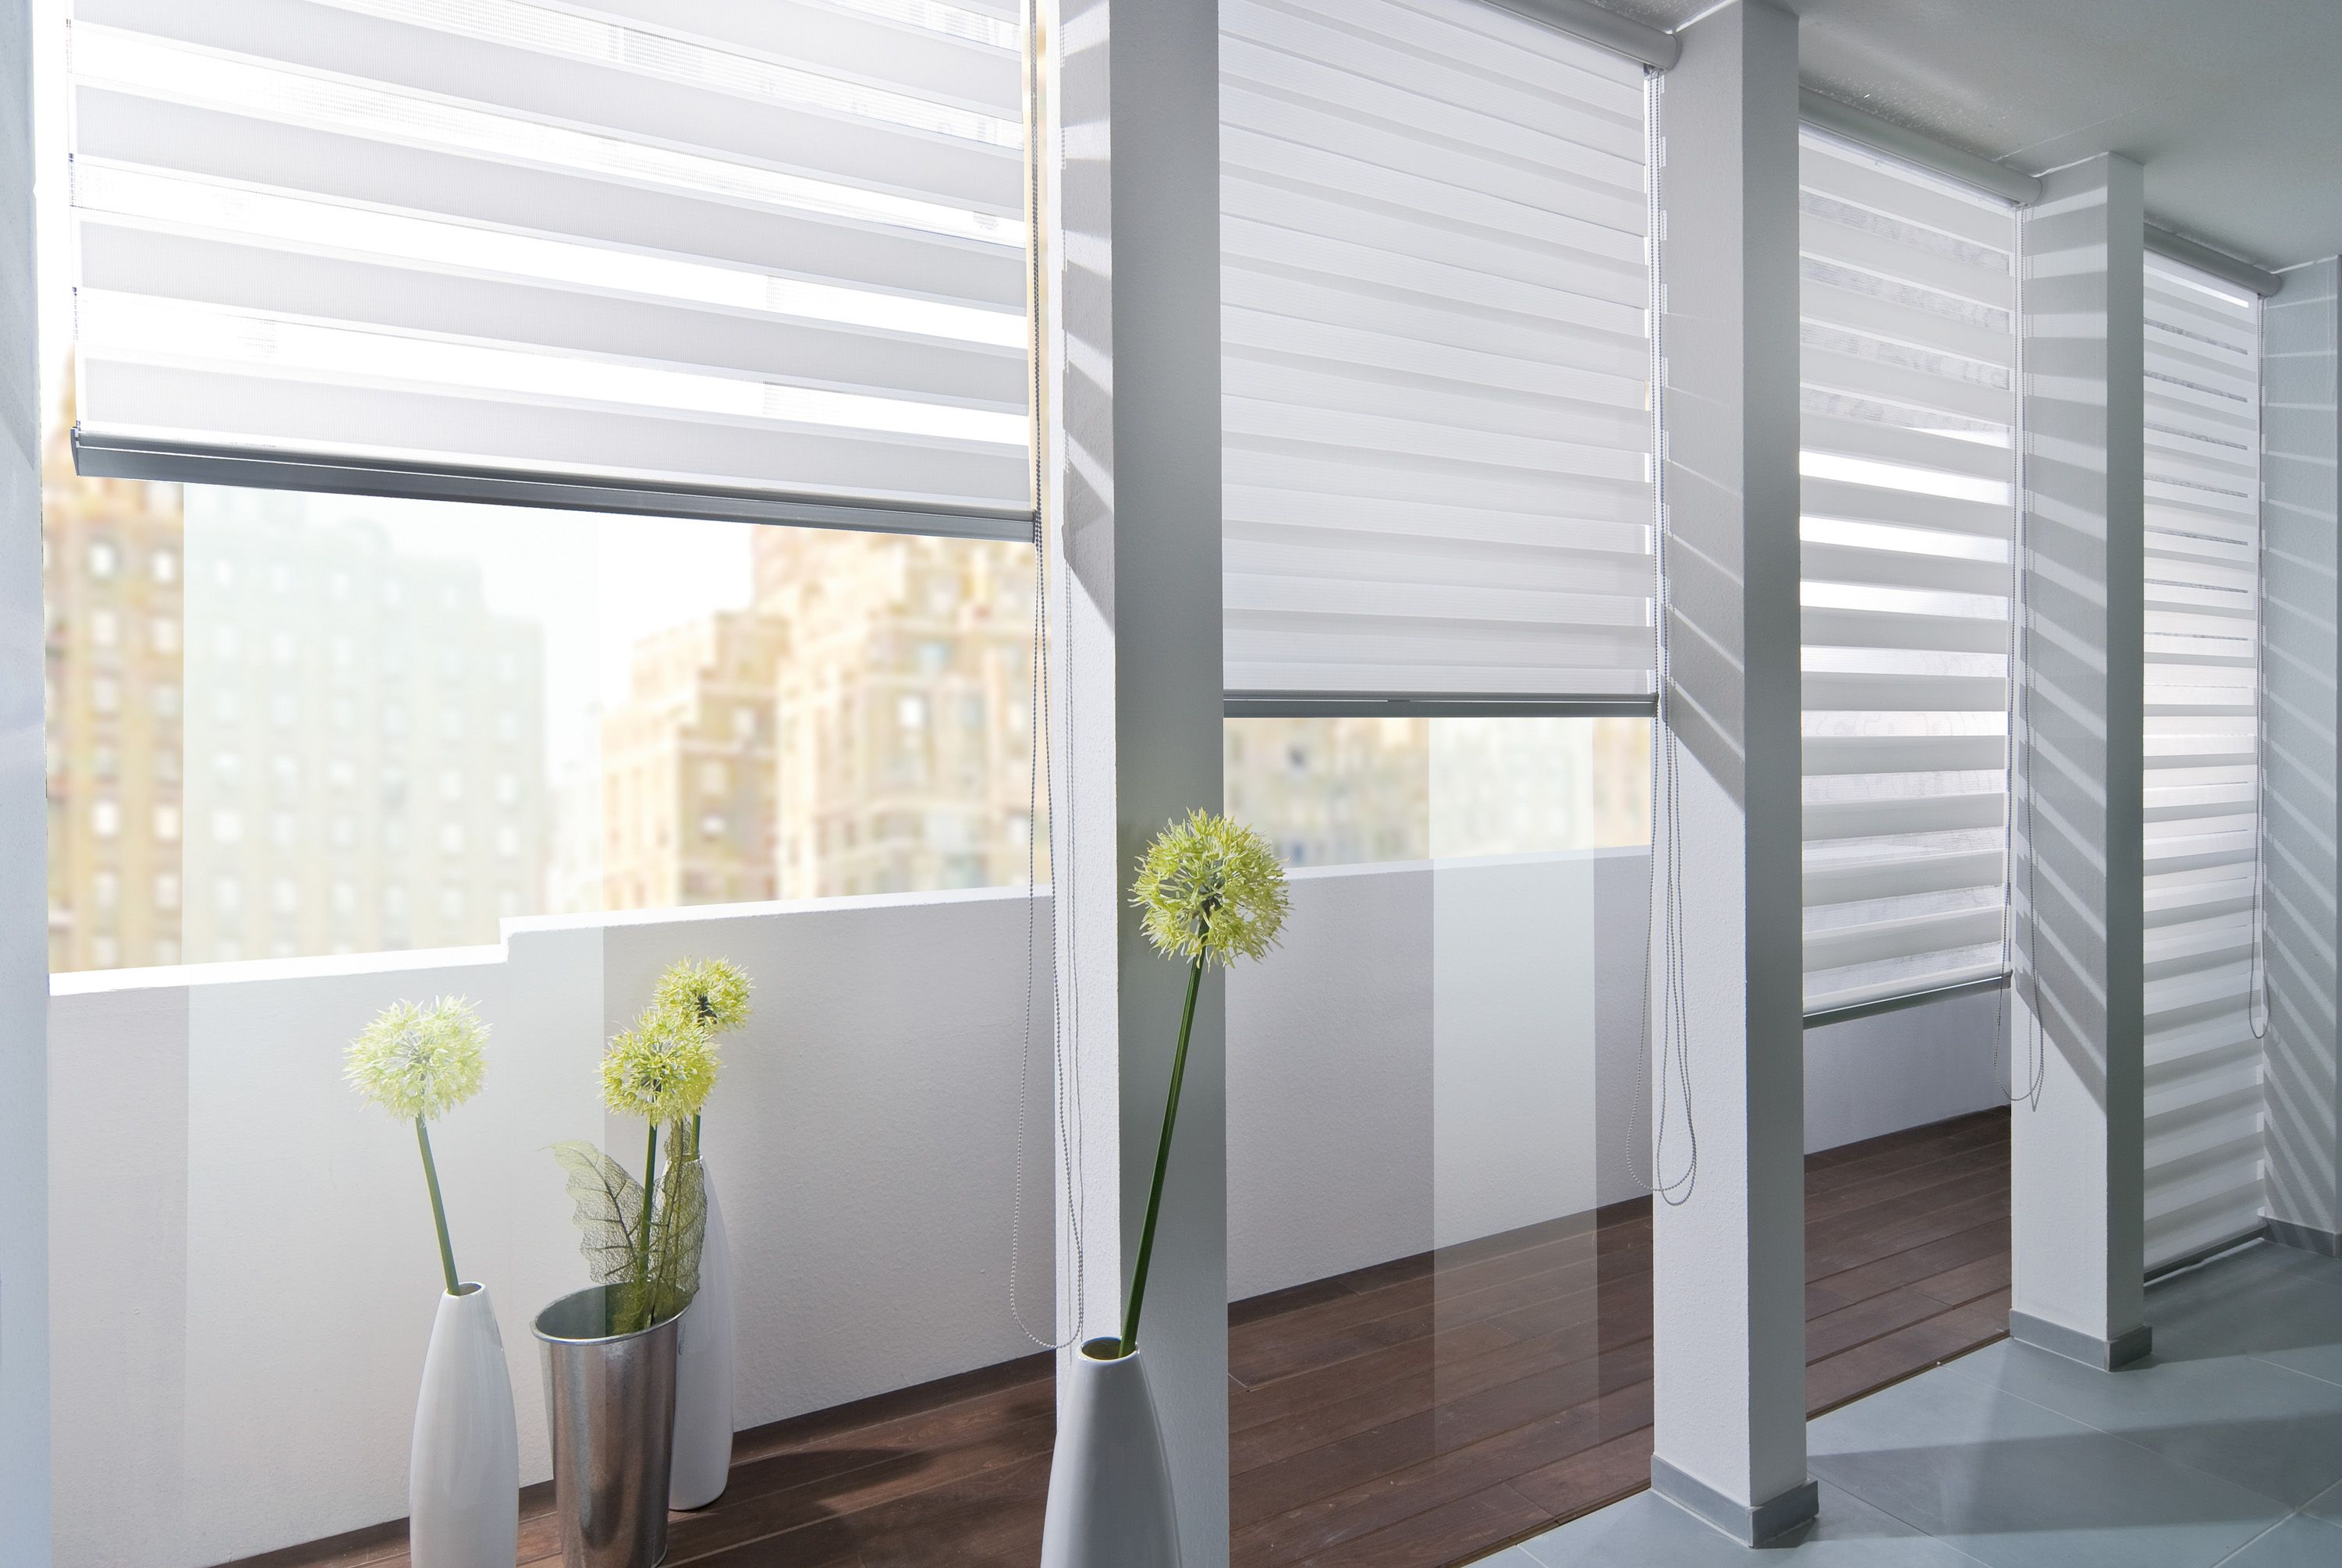 Teba Doppelrollo Teba Twinlight Rollo Windowtreatments Blinds Window Treatments